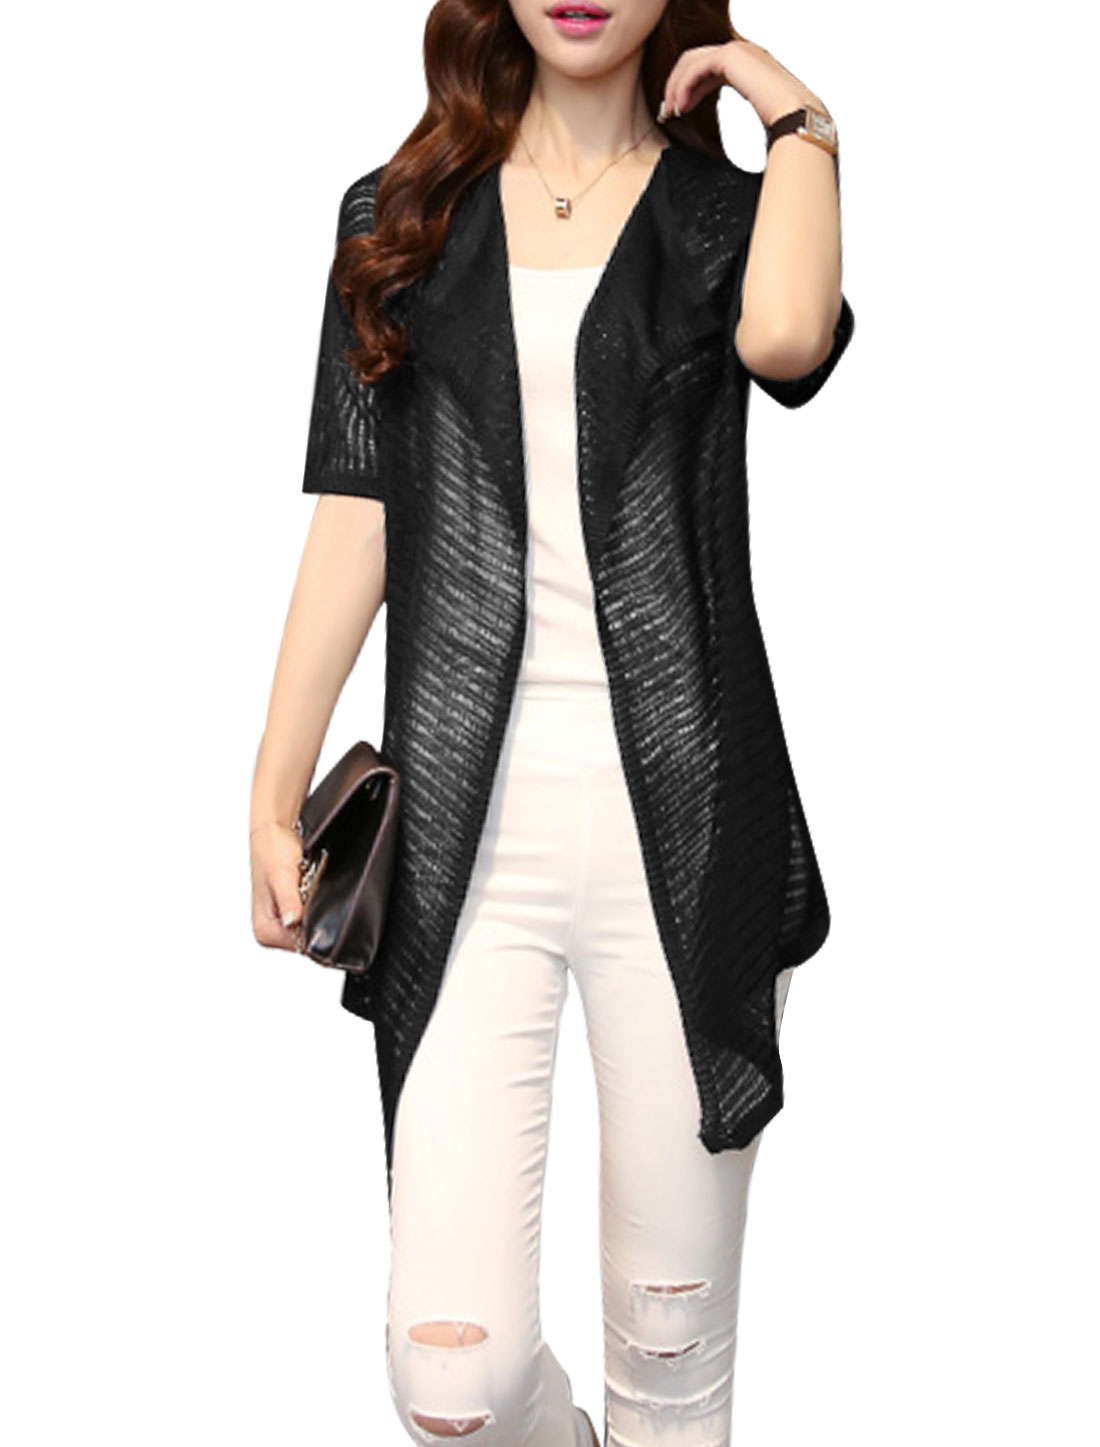 Women Short Sleeves Front Opening Shadow Stripes Knitted Cardigan Black S